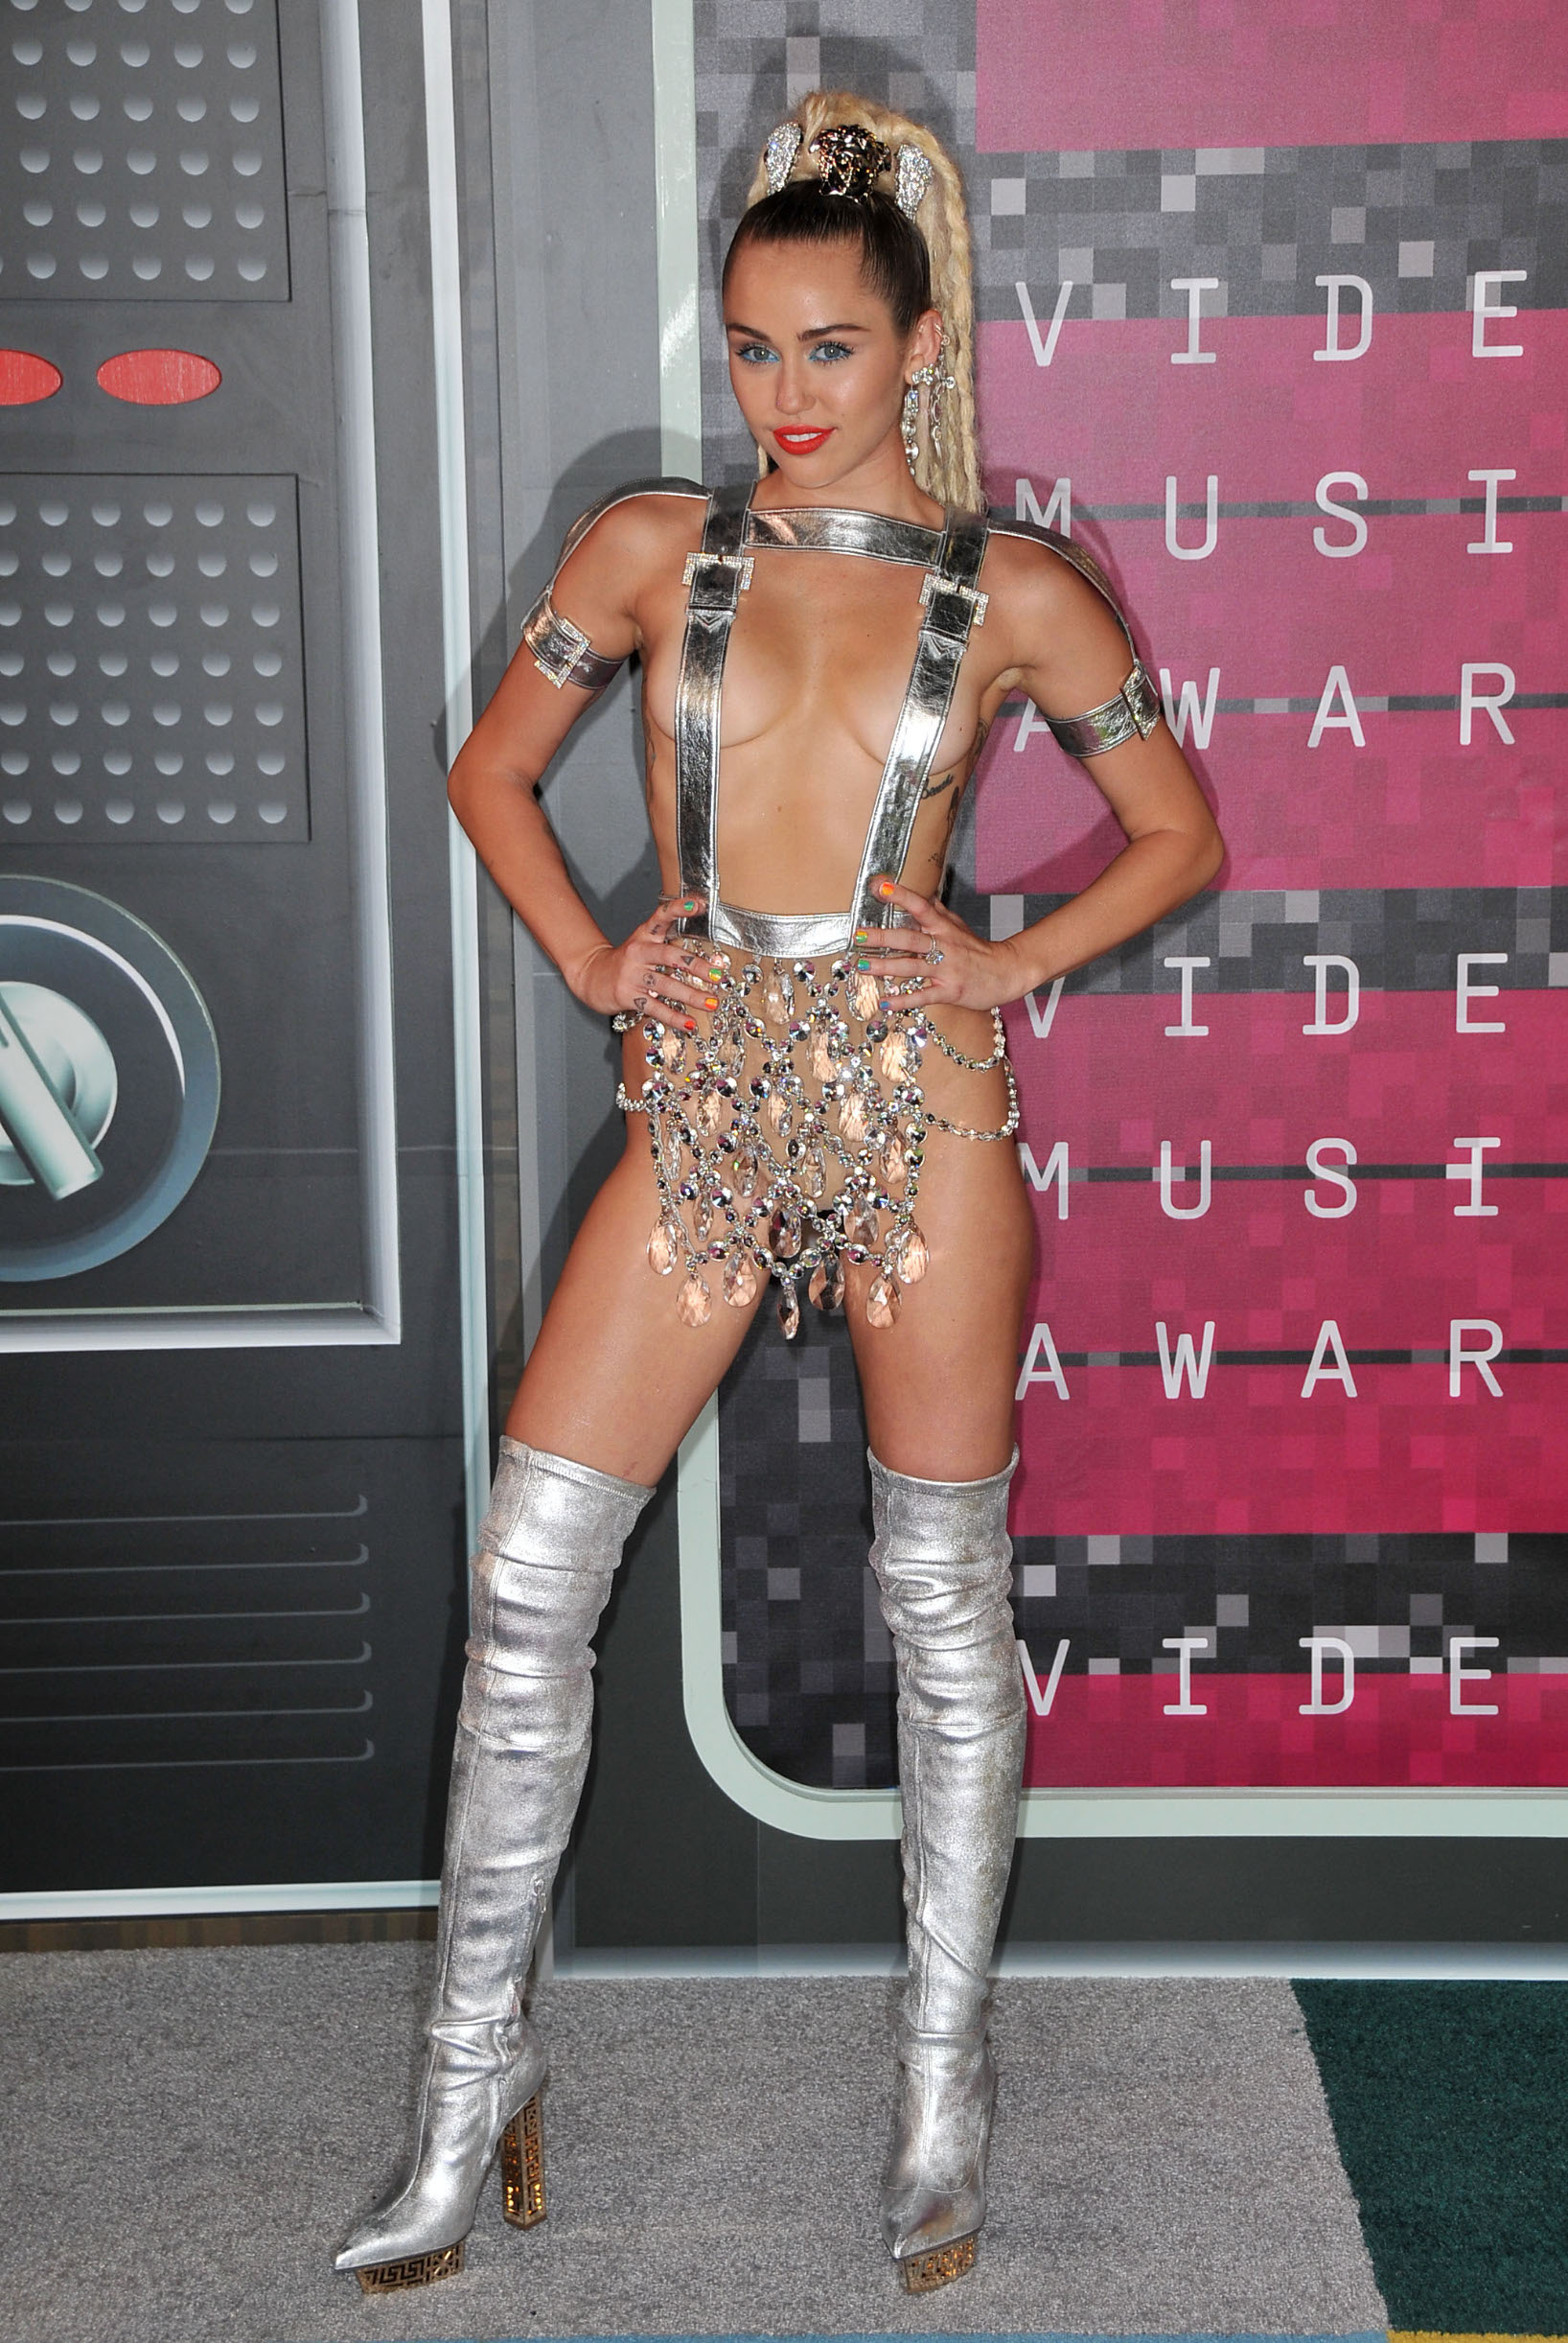 Miley Cyrus arrives at the 2015 MTV Video Music Awards held at ---- in Los Angeles, CA on August 30, 2015., Image: 256858164, License: Rights-managed, Restrictions: *** World Rights ***, Model Release: no, Credit line: Sipa USA / ddp USA / Profimedia